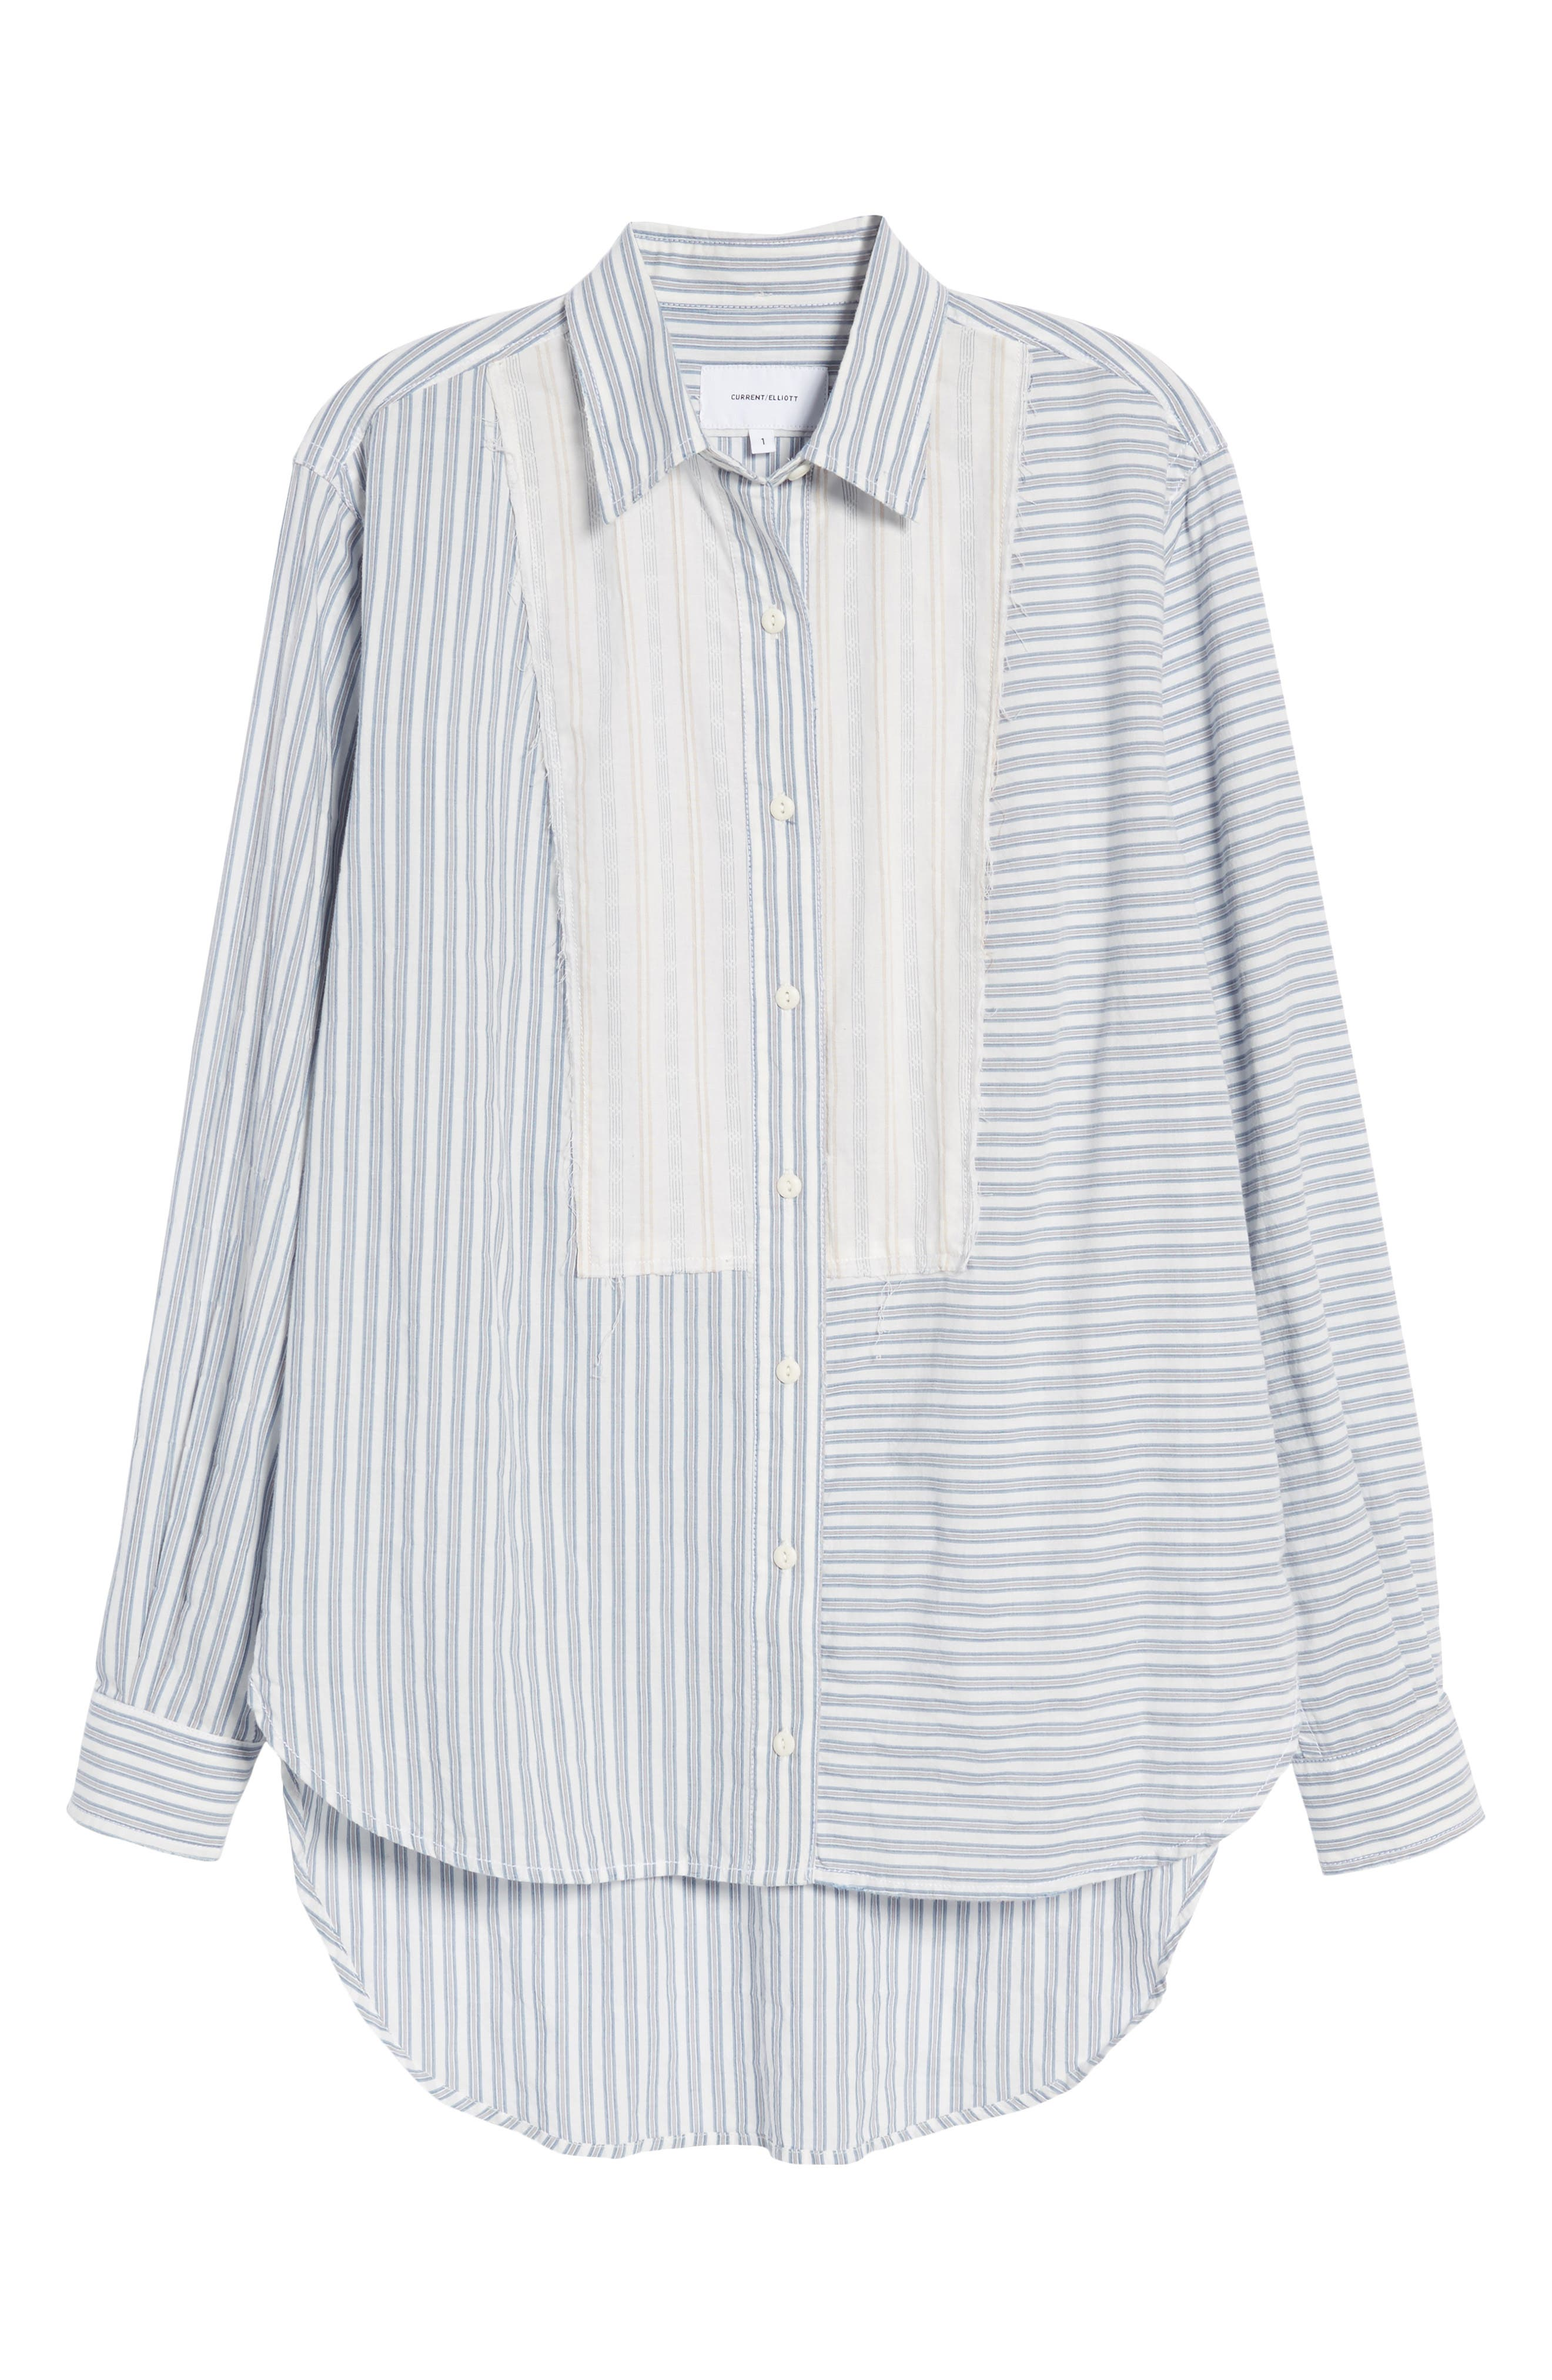 The Rosie Shirt,                             Alternate thumbnail 7, color,                             Multicolor Stripe